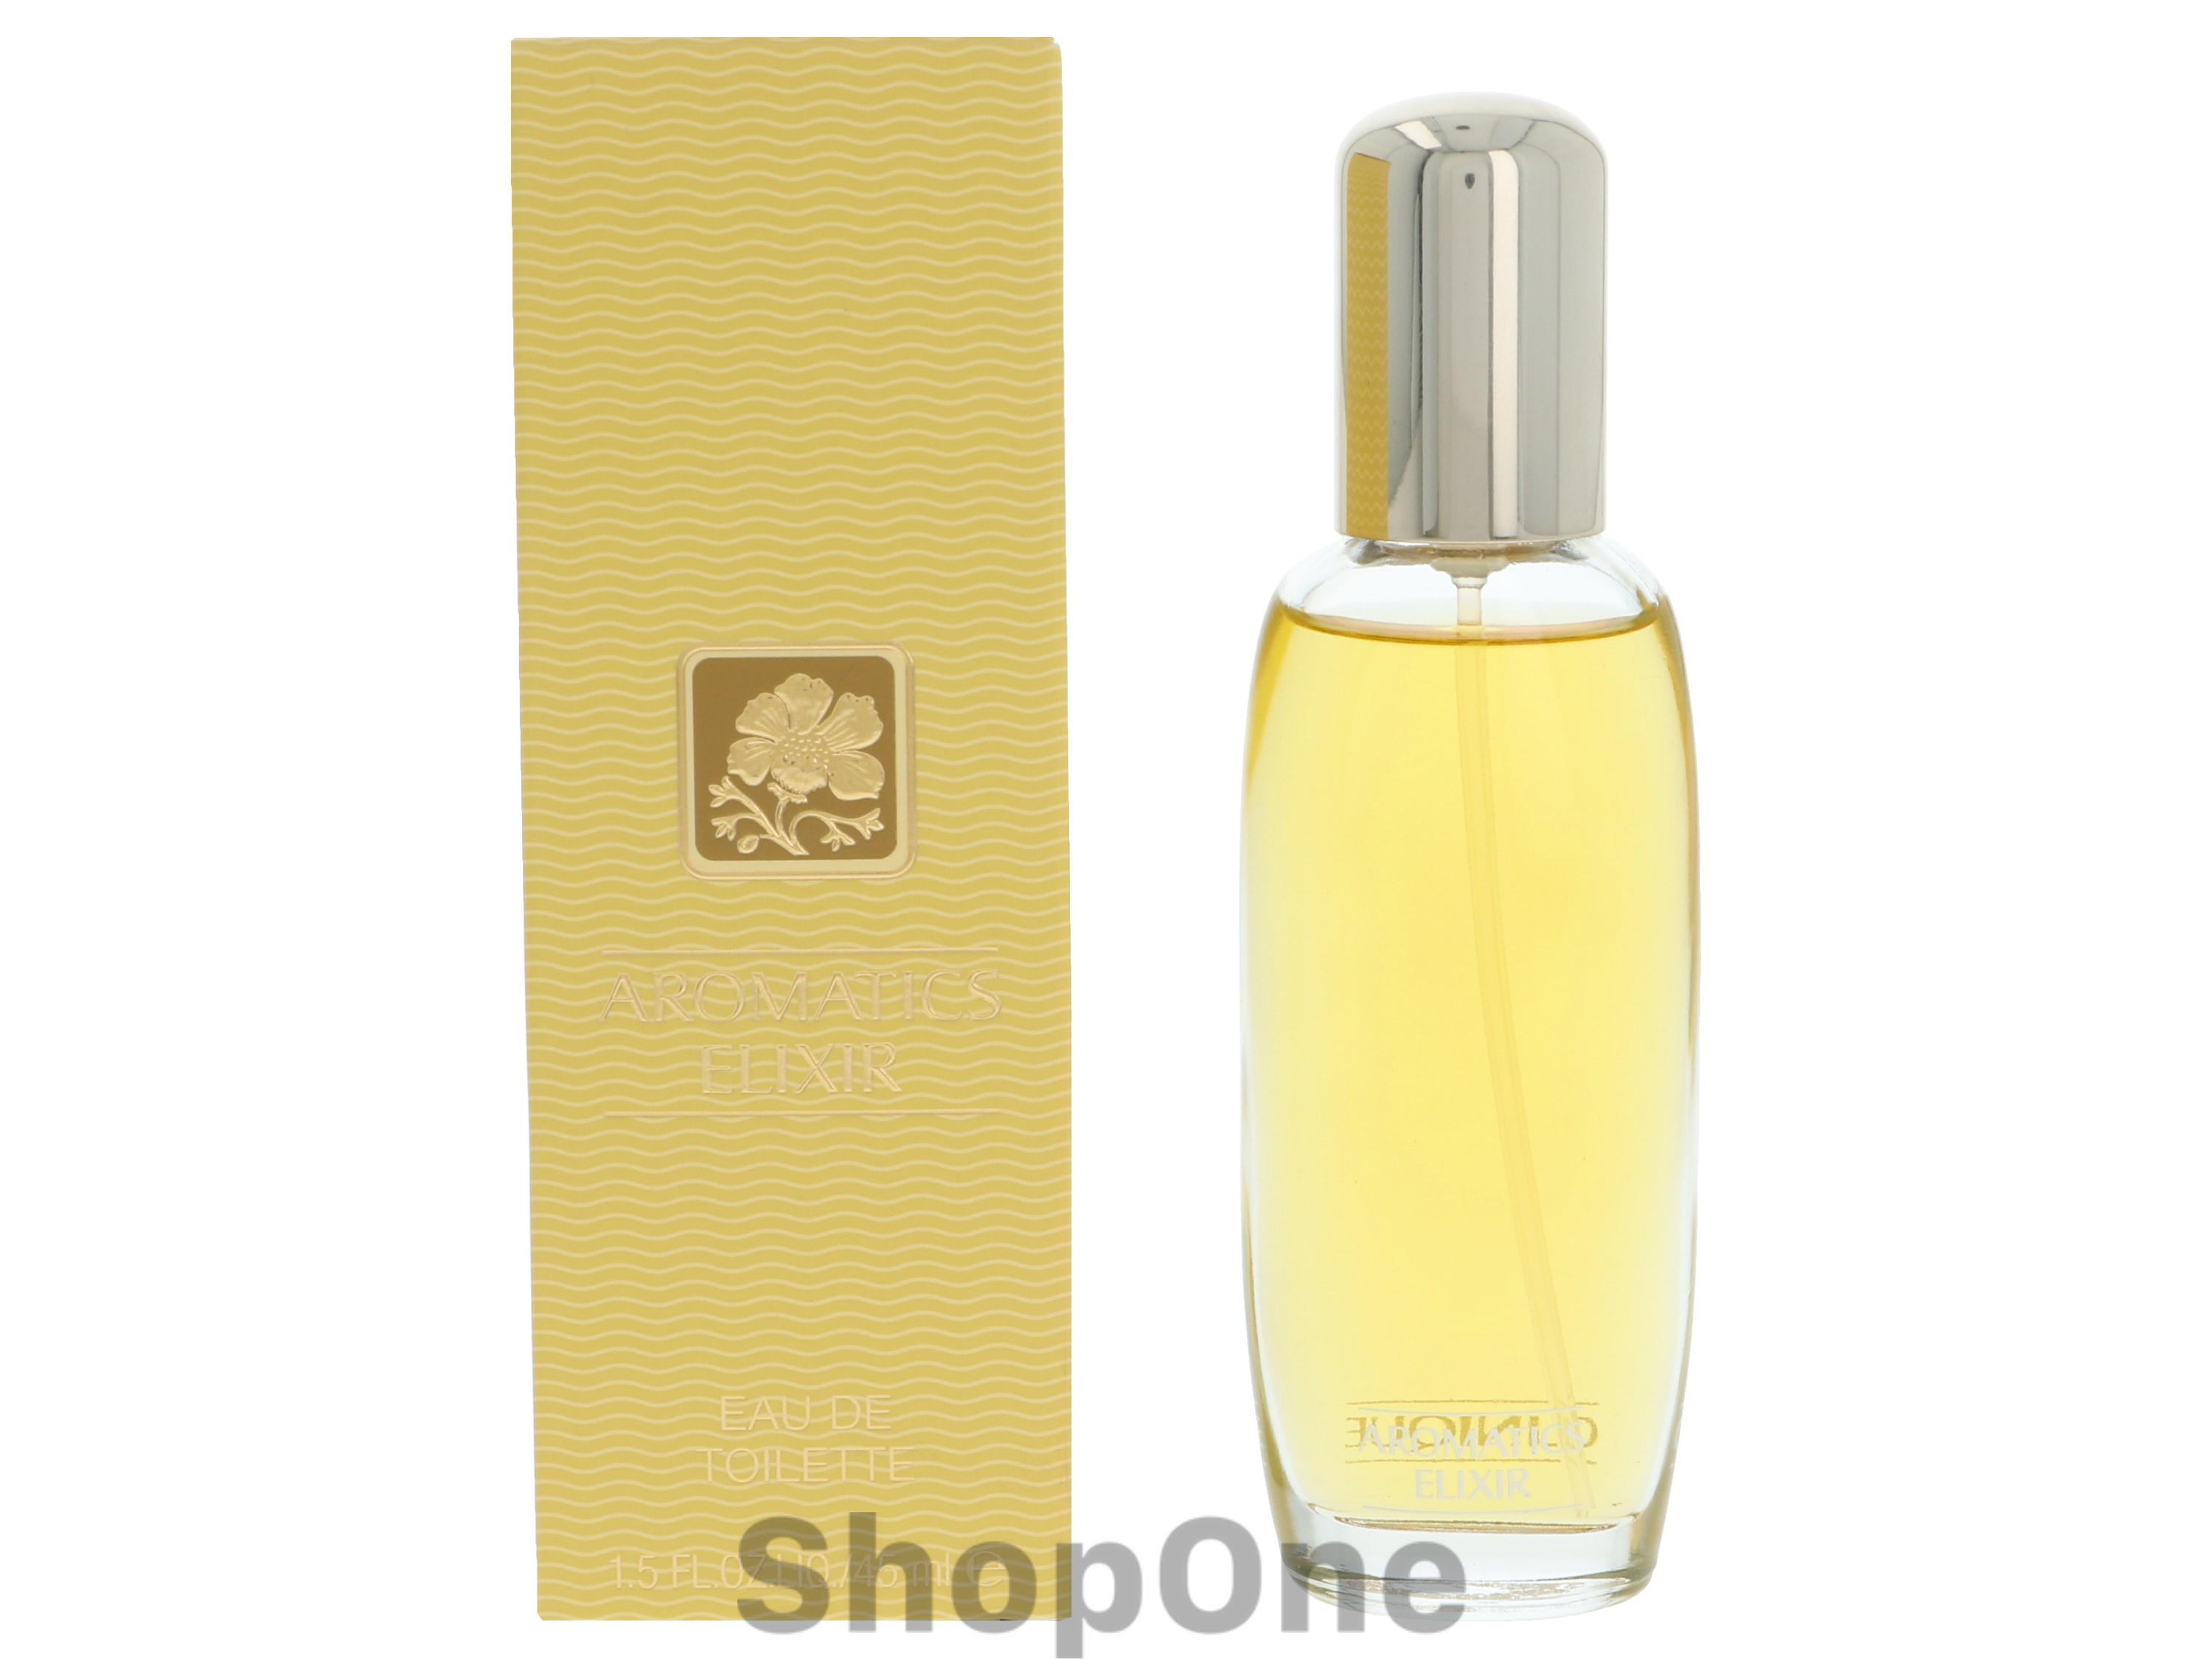 Image of   Aromatics Elixir Edt Spray 45 ml fra Clinique